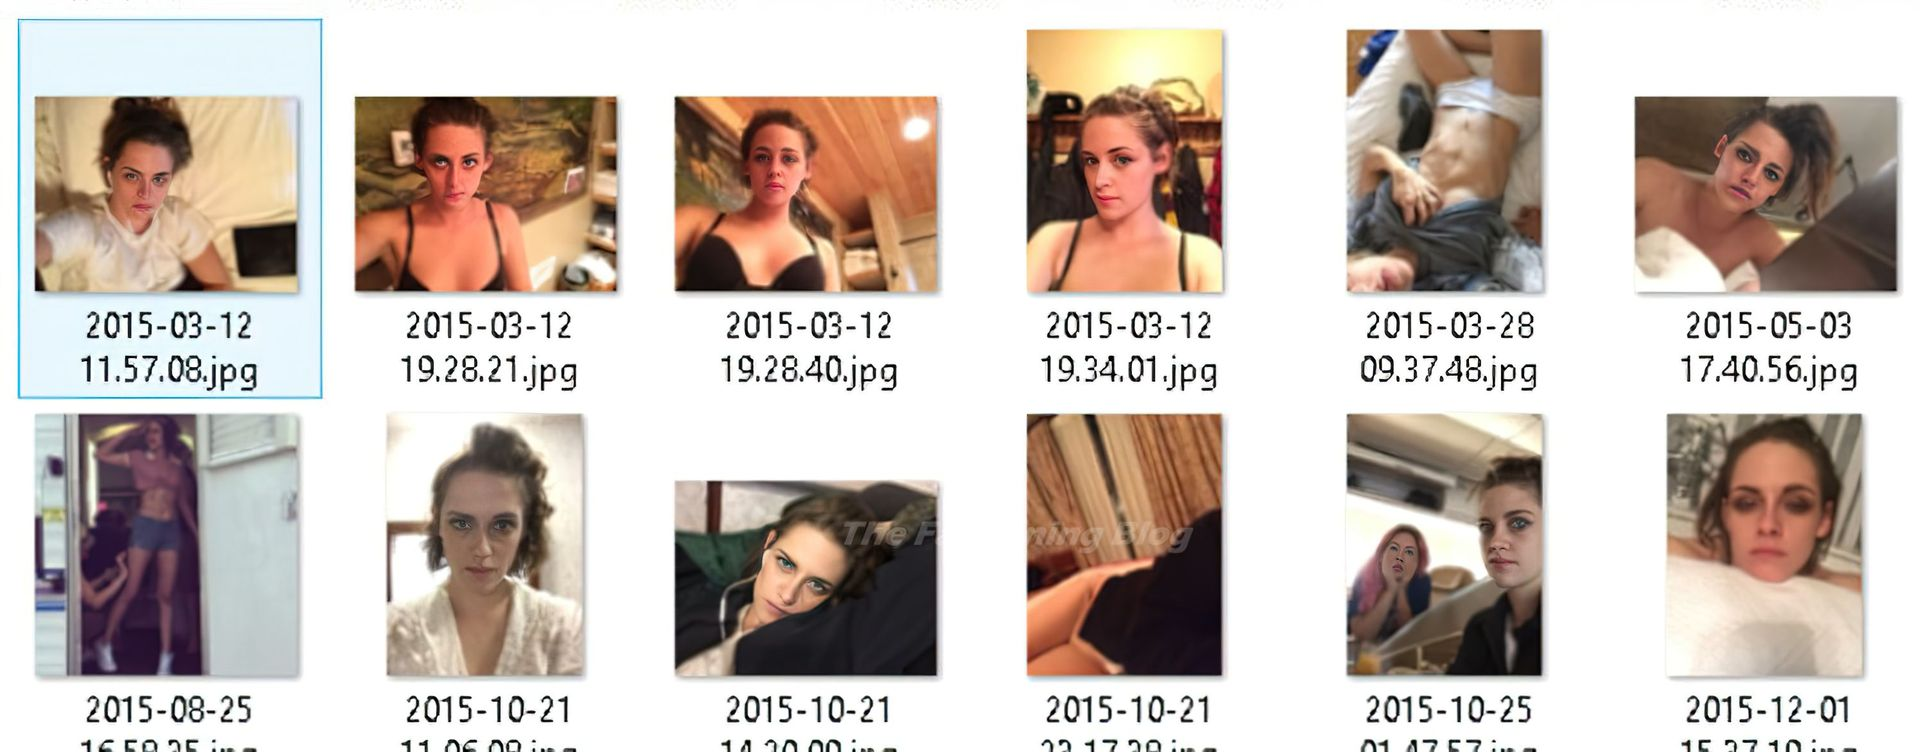 Kristen Stewart Nude Leaked The Fappening Complete Collection 0174